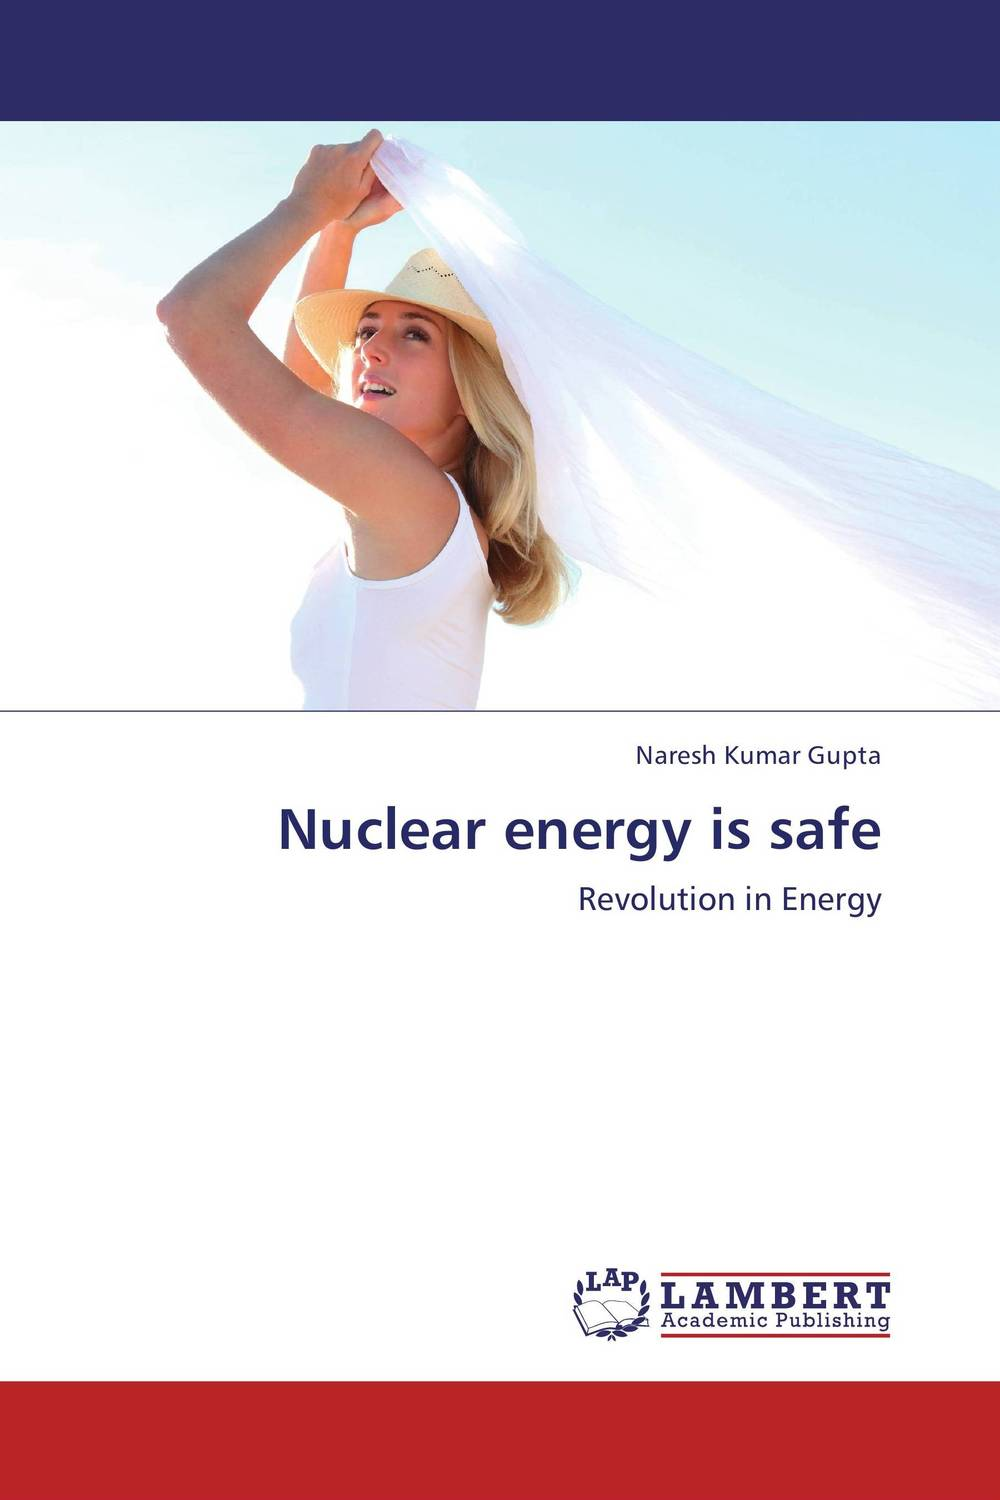 Nuclear energy is safe seeing things as they are